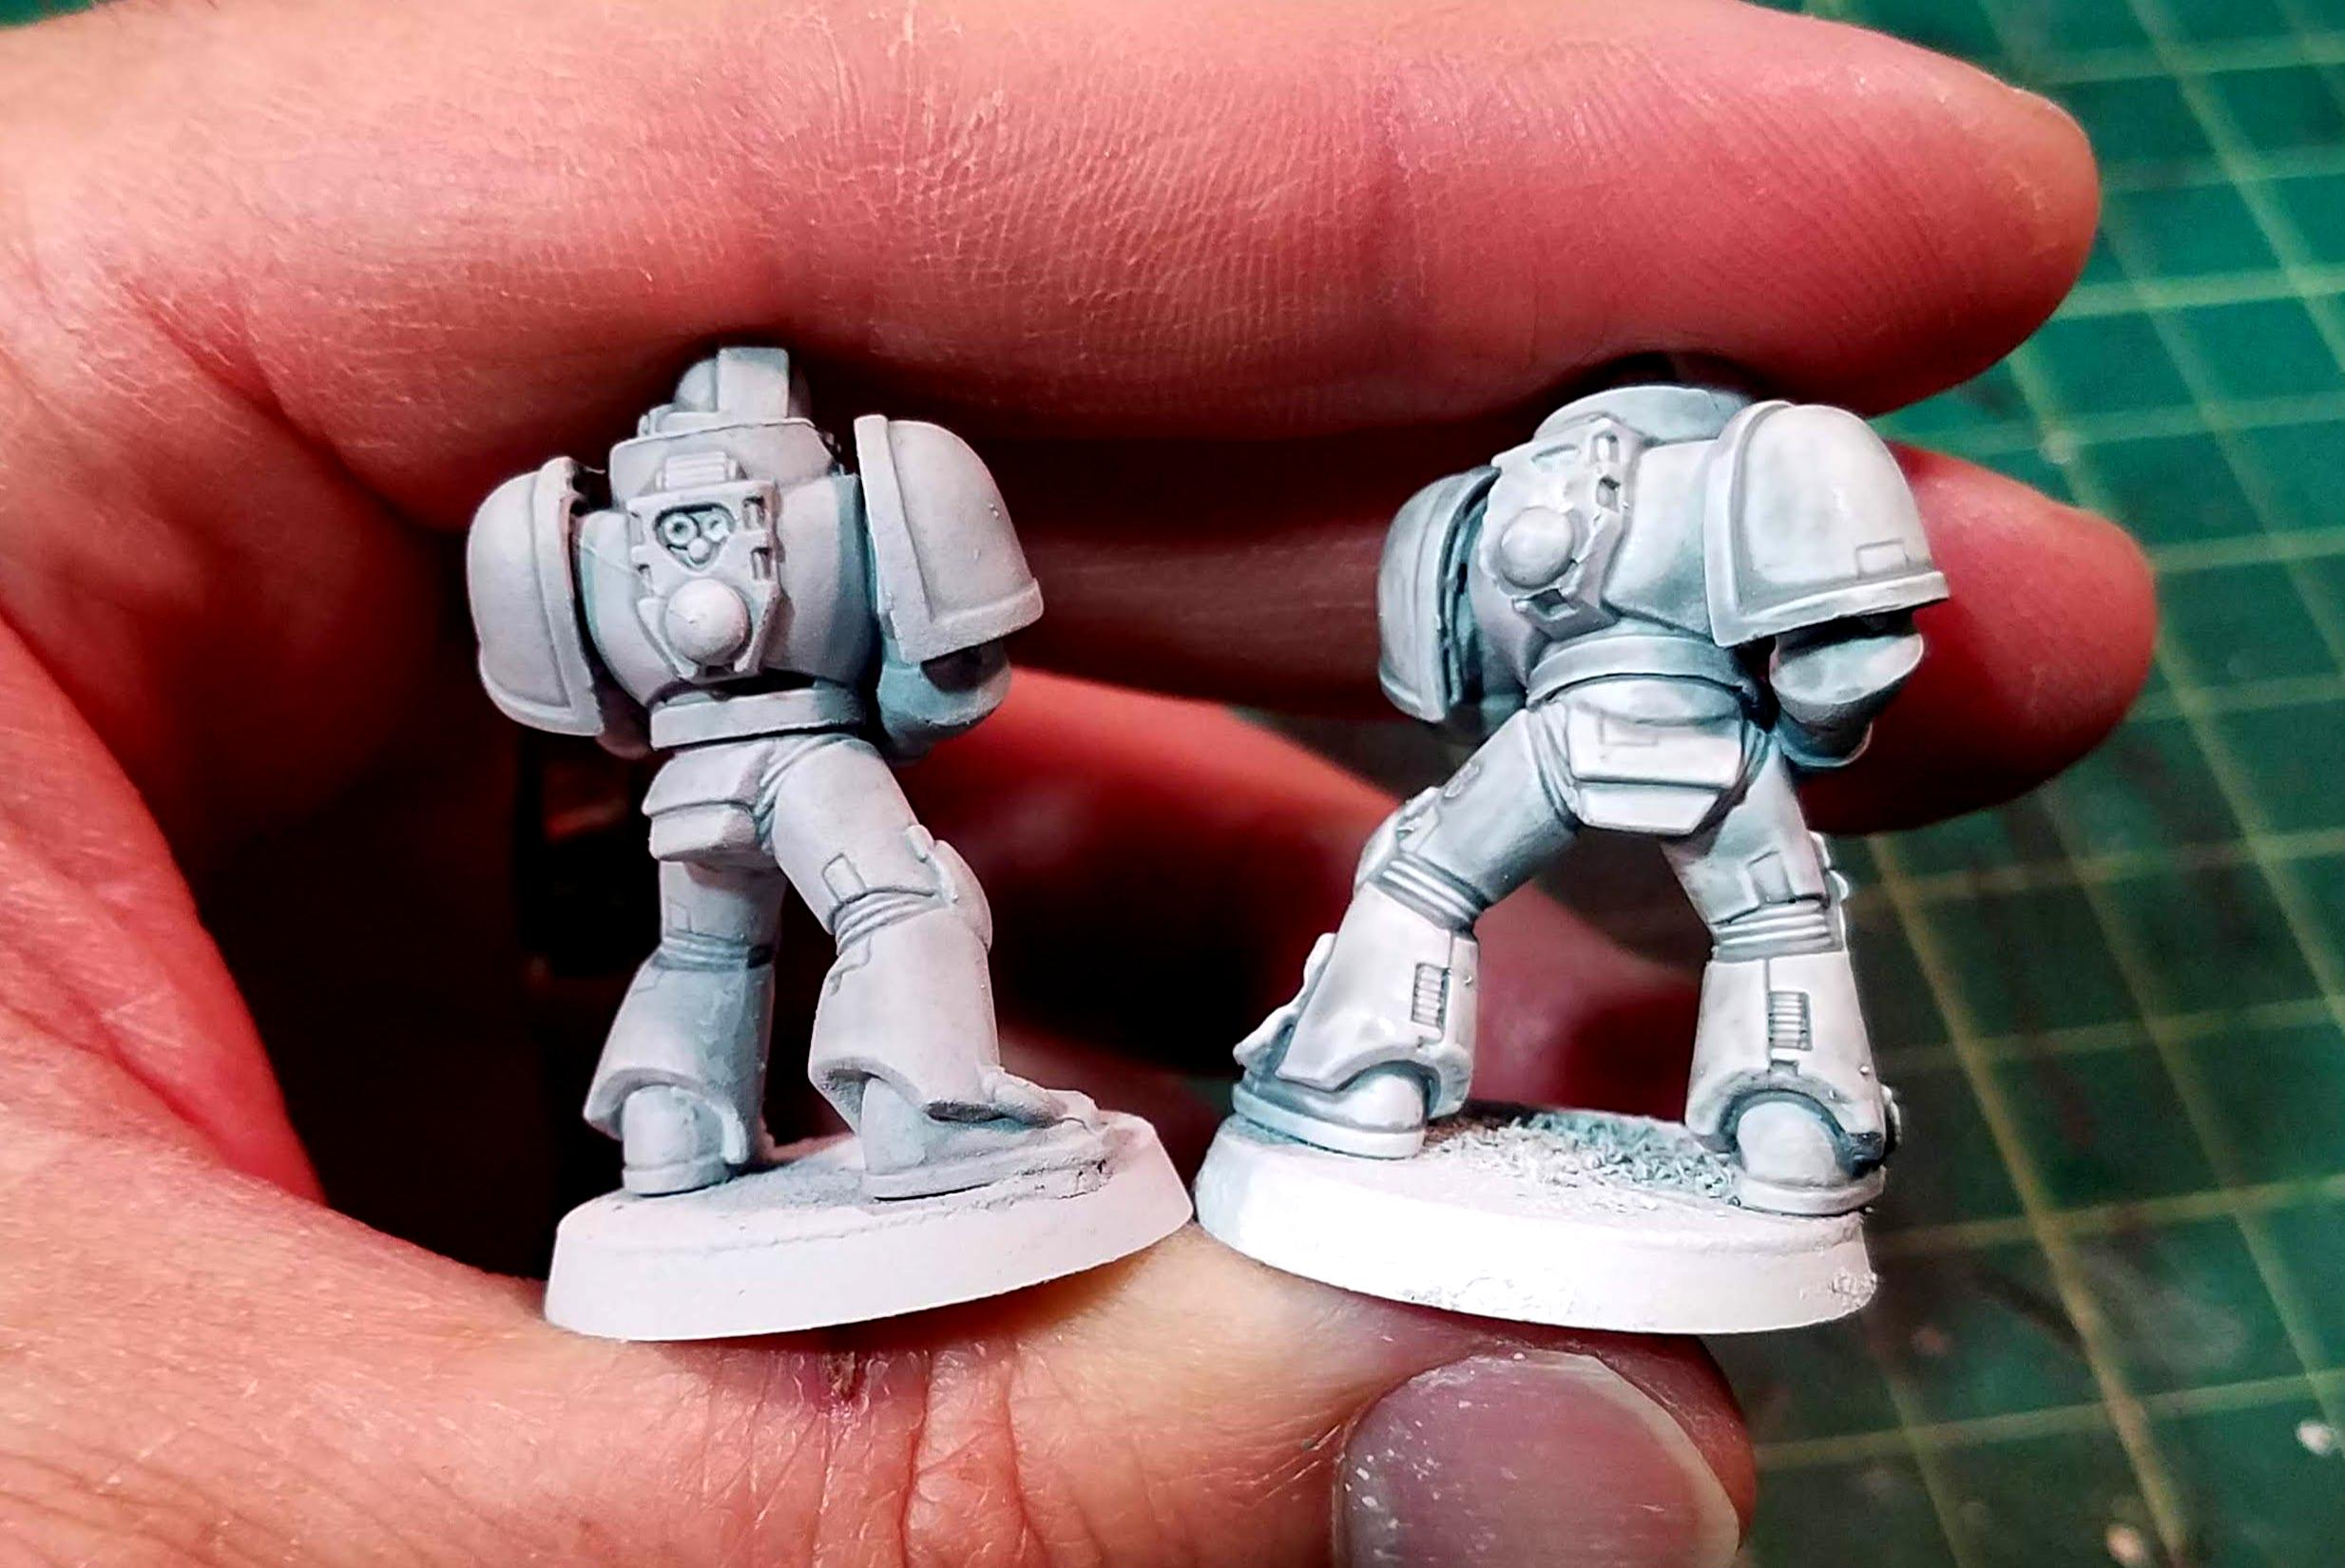 Corax White on the left, 2X Paint/Primer on the right, close-up